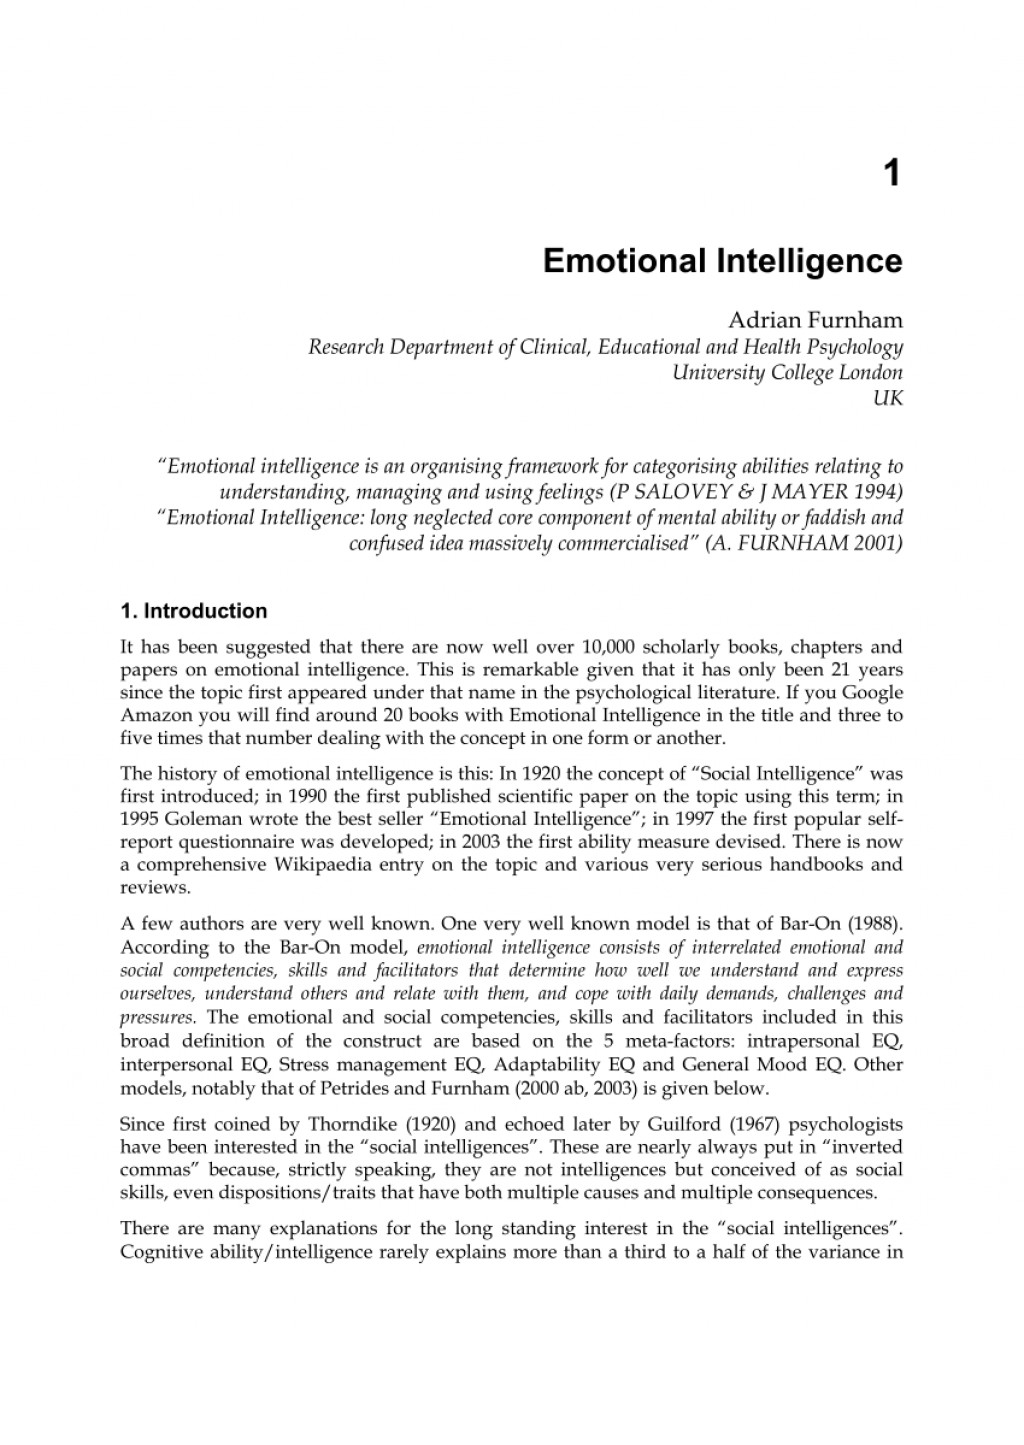 001 Emotional Intelligence Essay Largepreview Fantastic Paper Conclusion Large